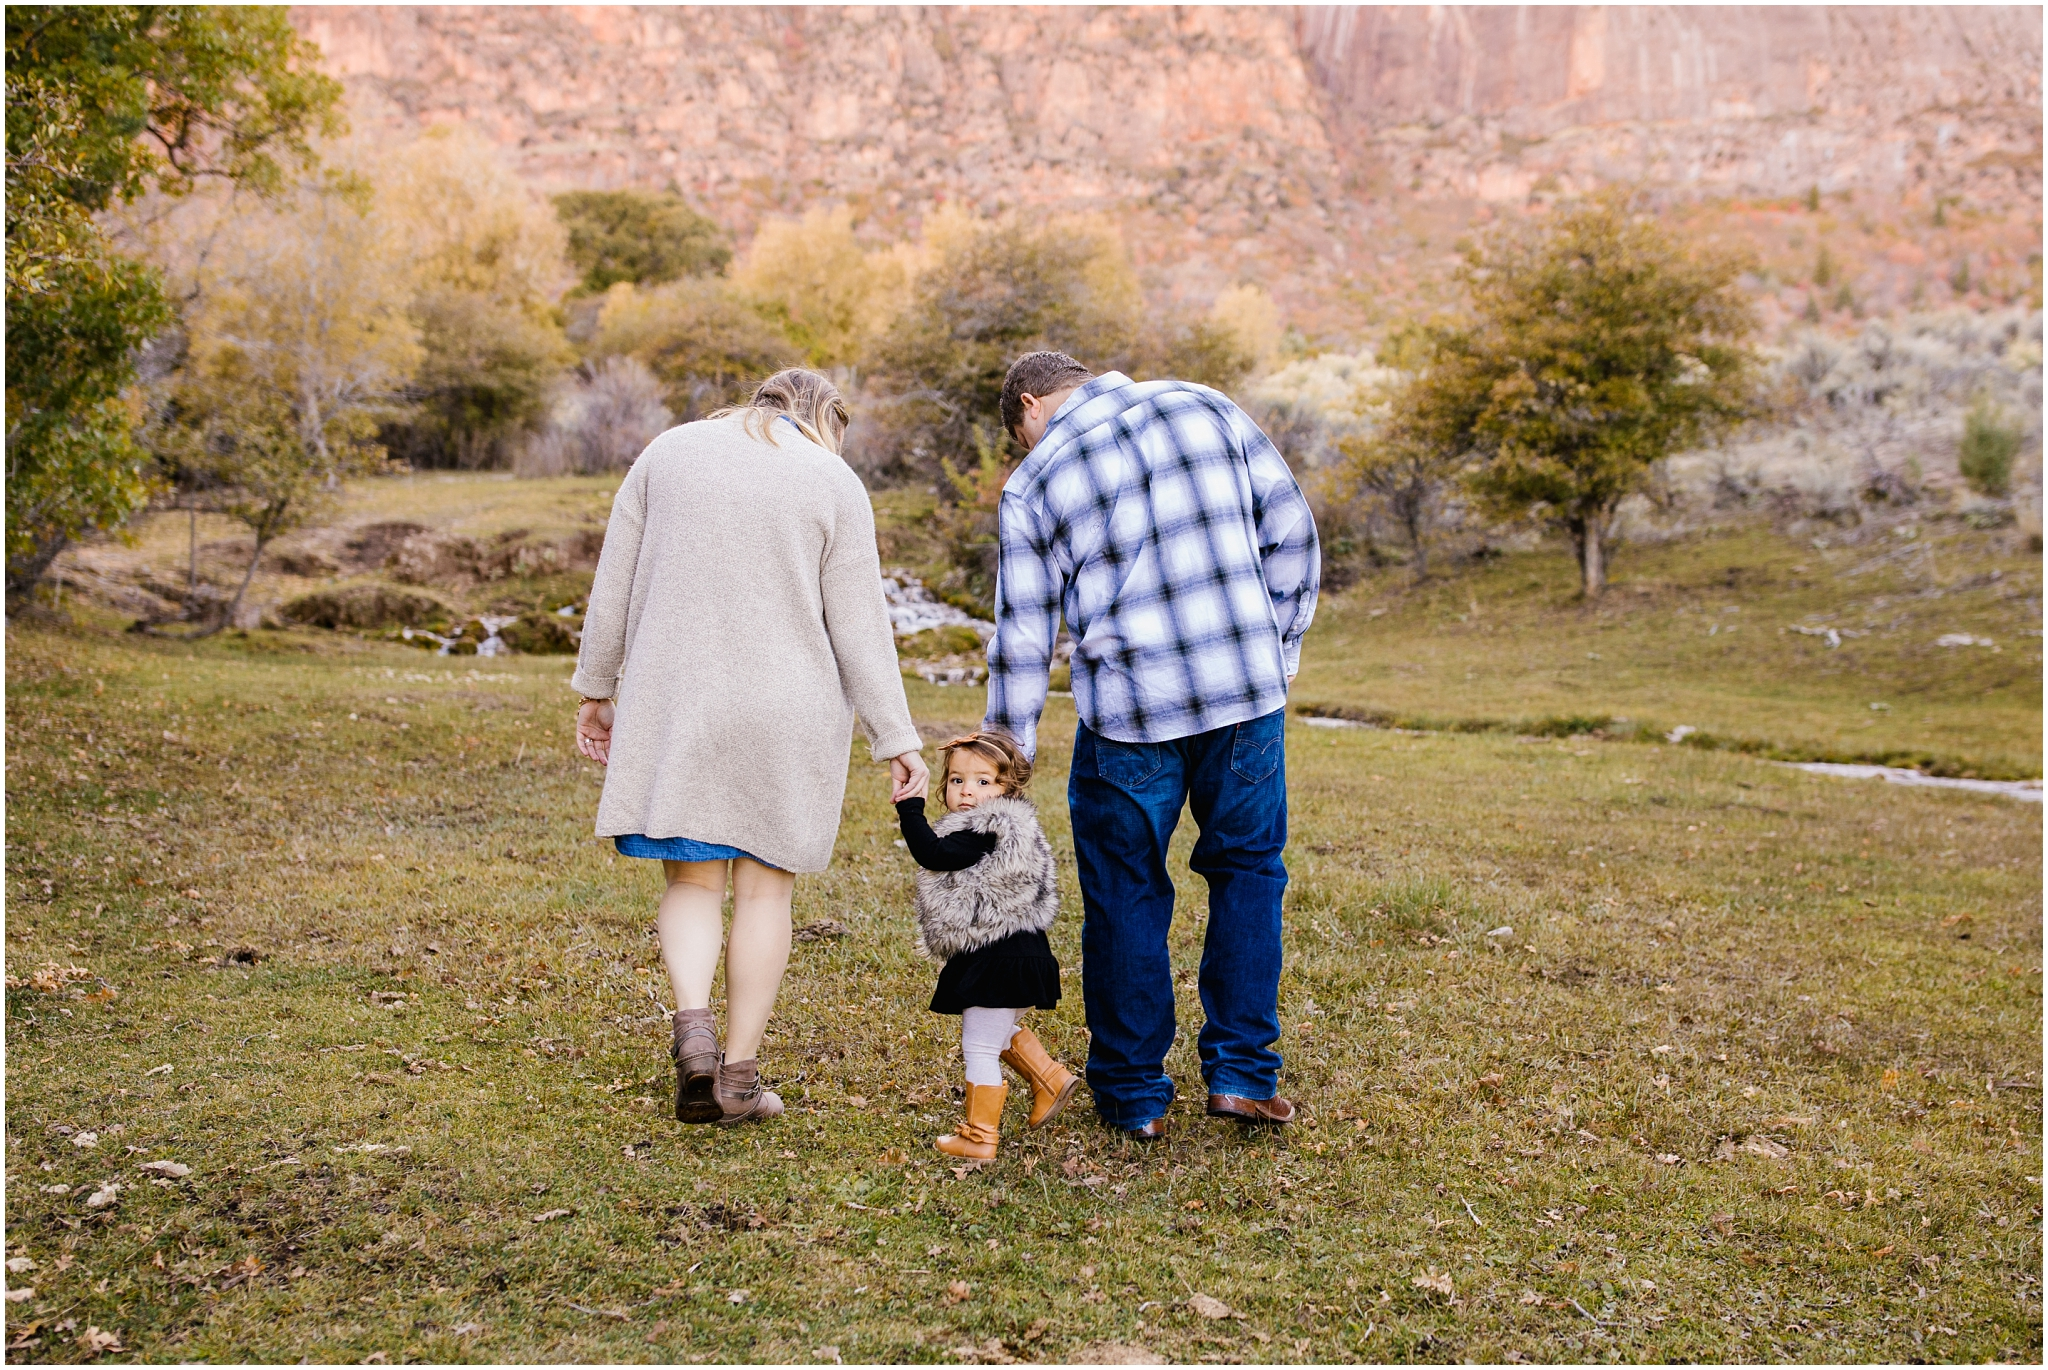 Frandsen-11_Lizzie-B-Imagery-Utah-Family-Photographer-Utah-County-Central-Utah-Park-City-Salt-Lake-City.jpg